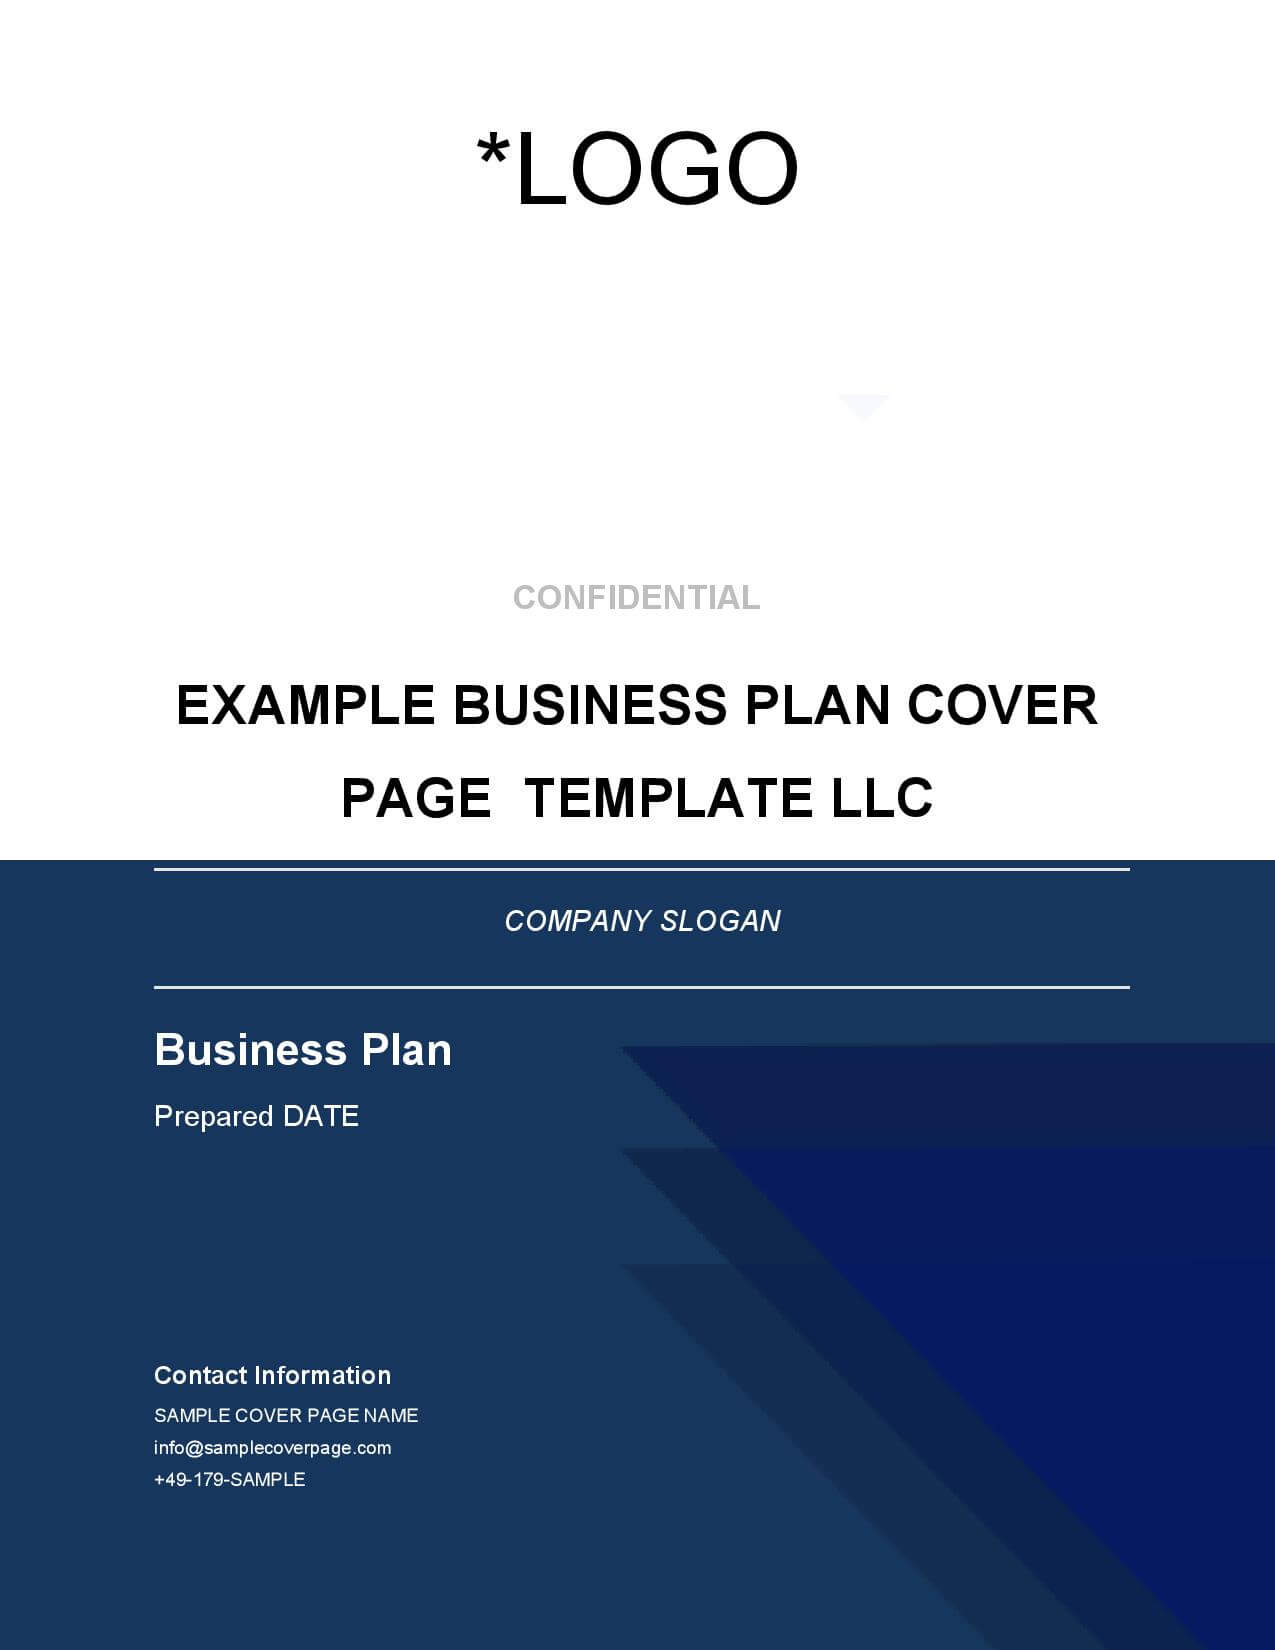 Business plan cover page template brainhive business planning businessplan cover page template en 1 page 001 wajeb Image collections